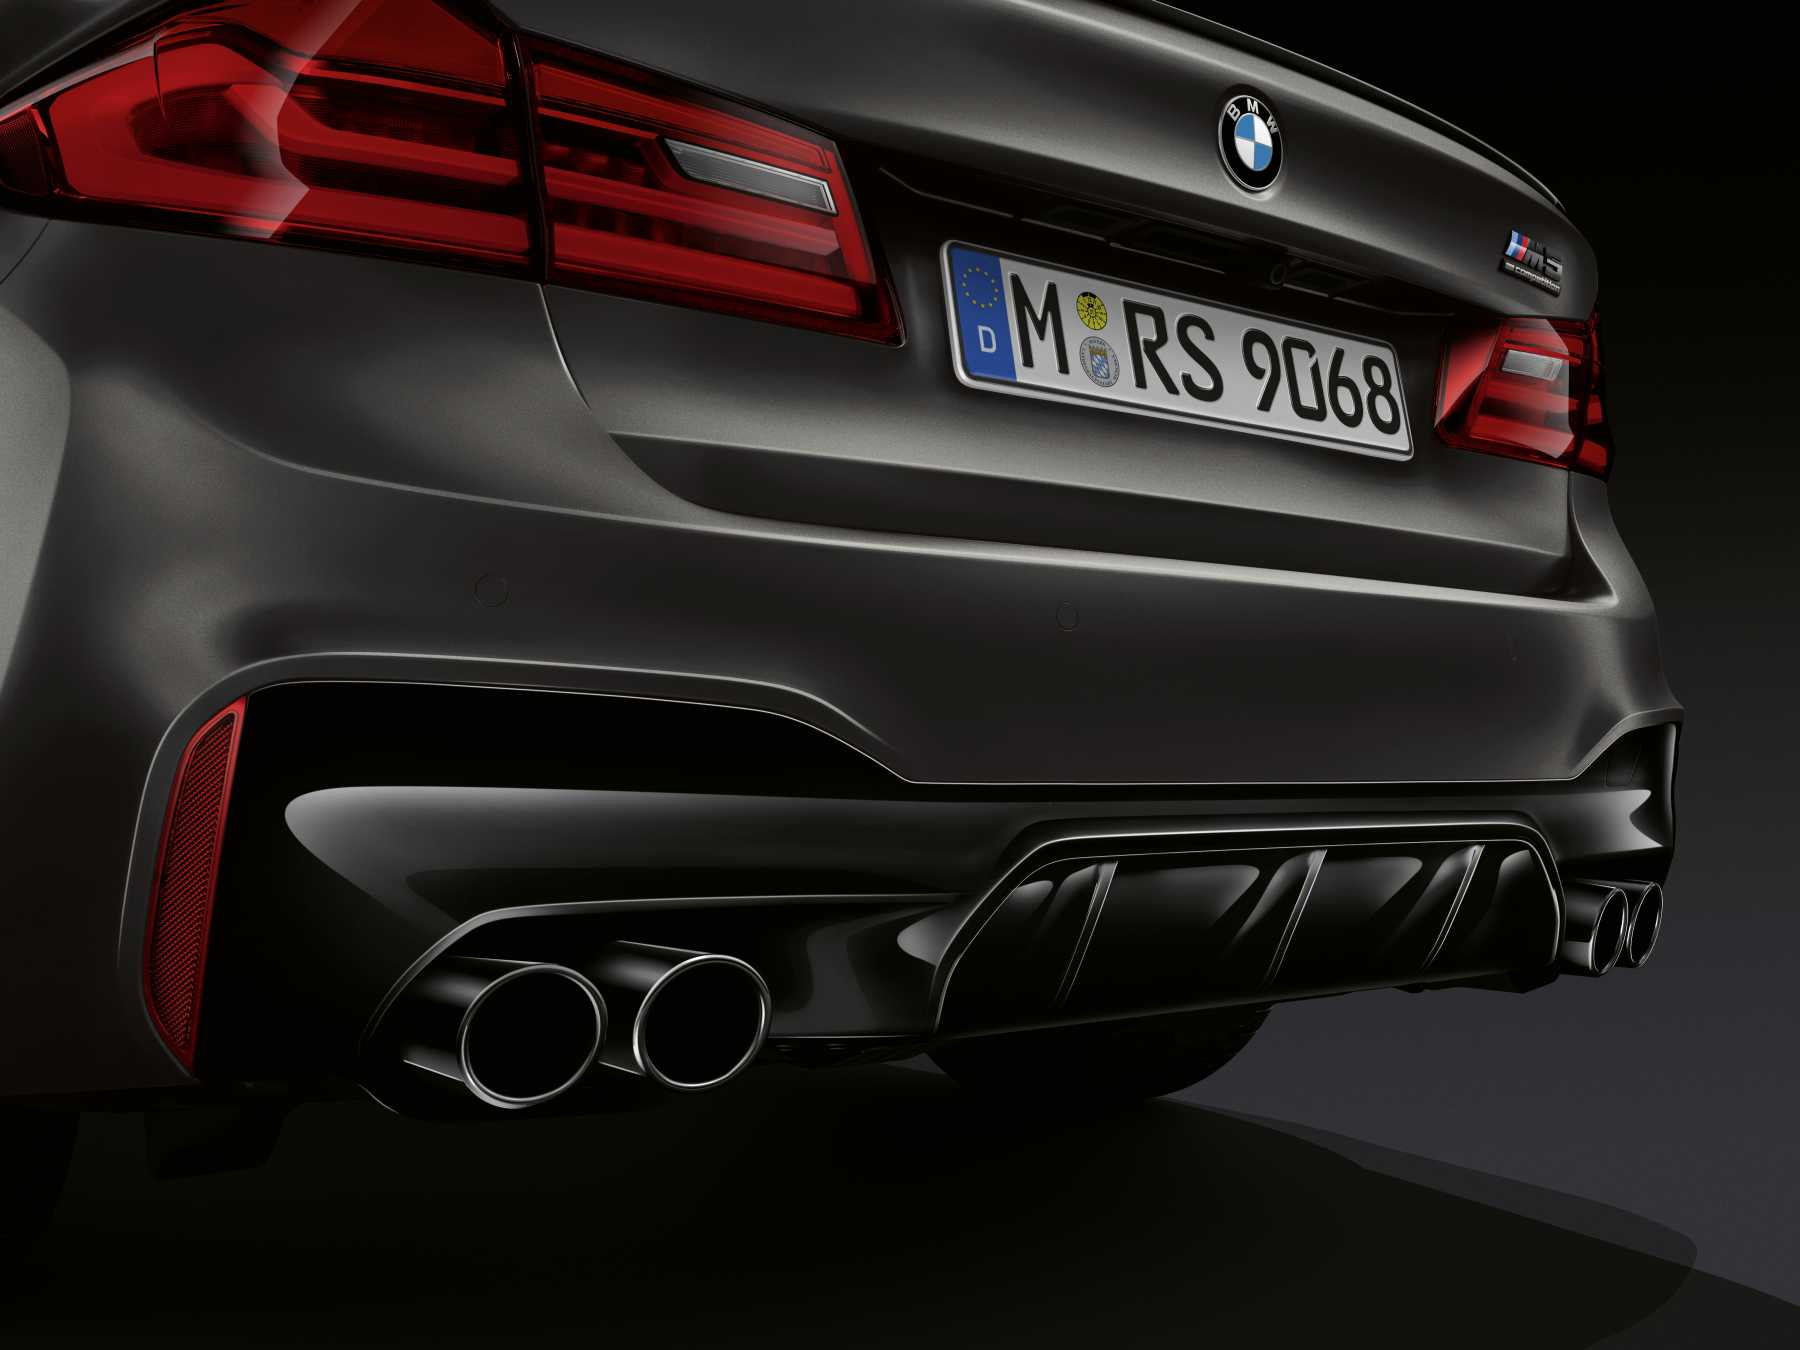 The BMW M5 Edition 35 Jahre Exhaust